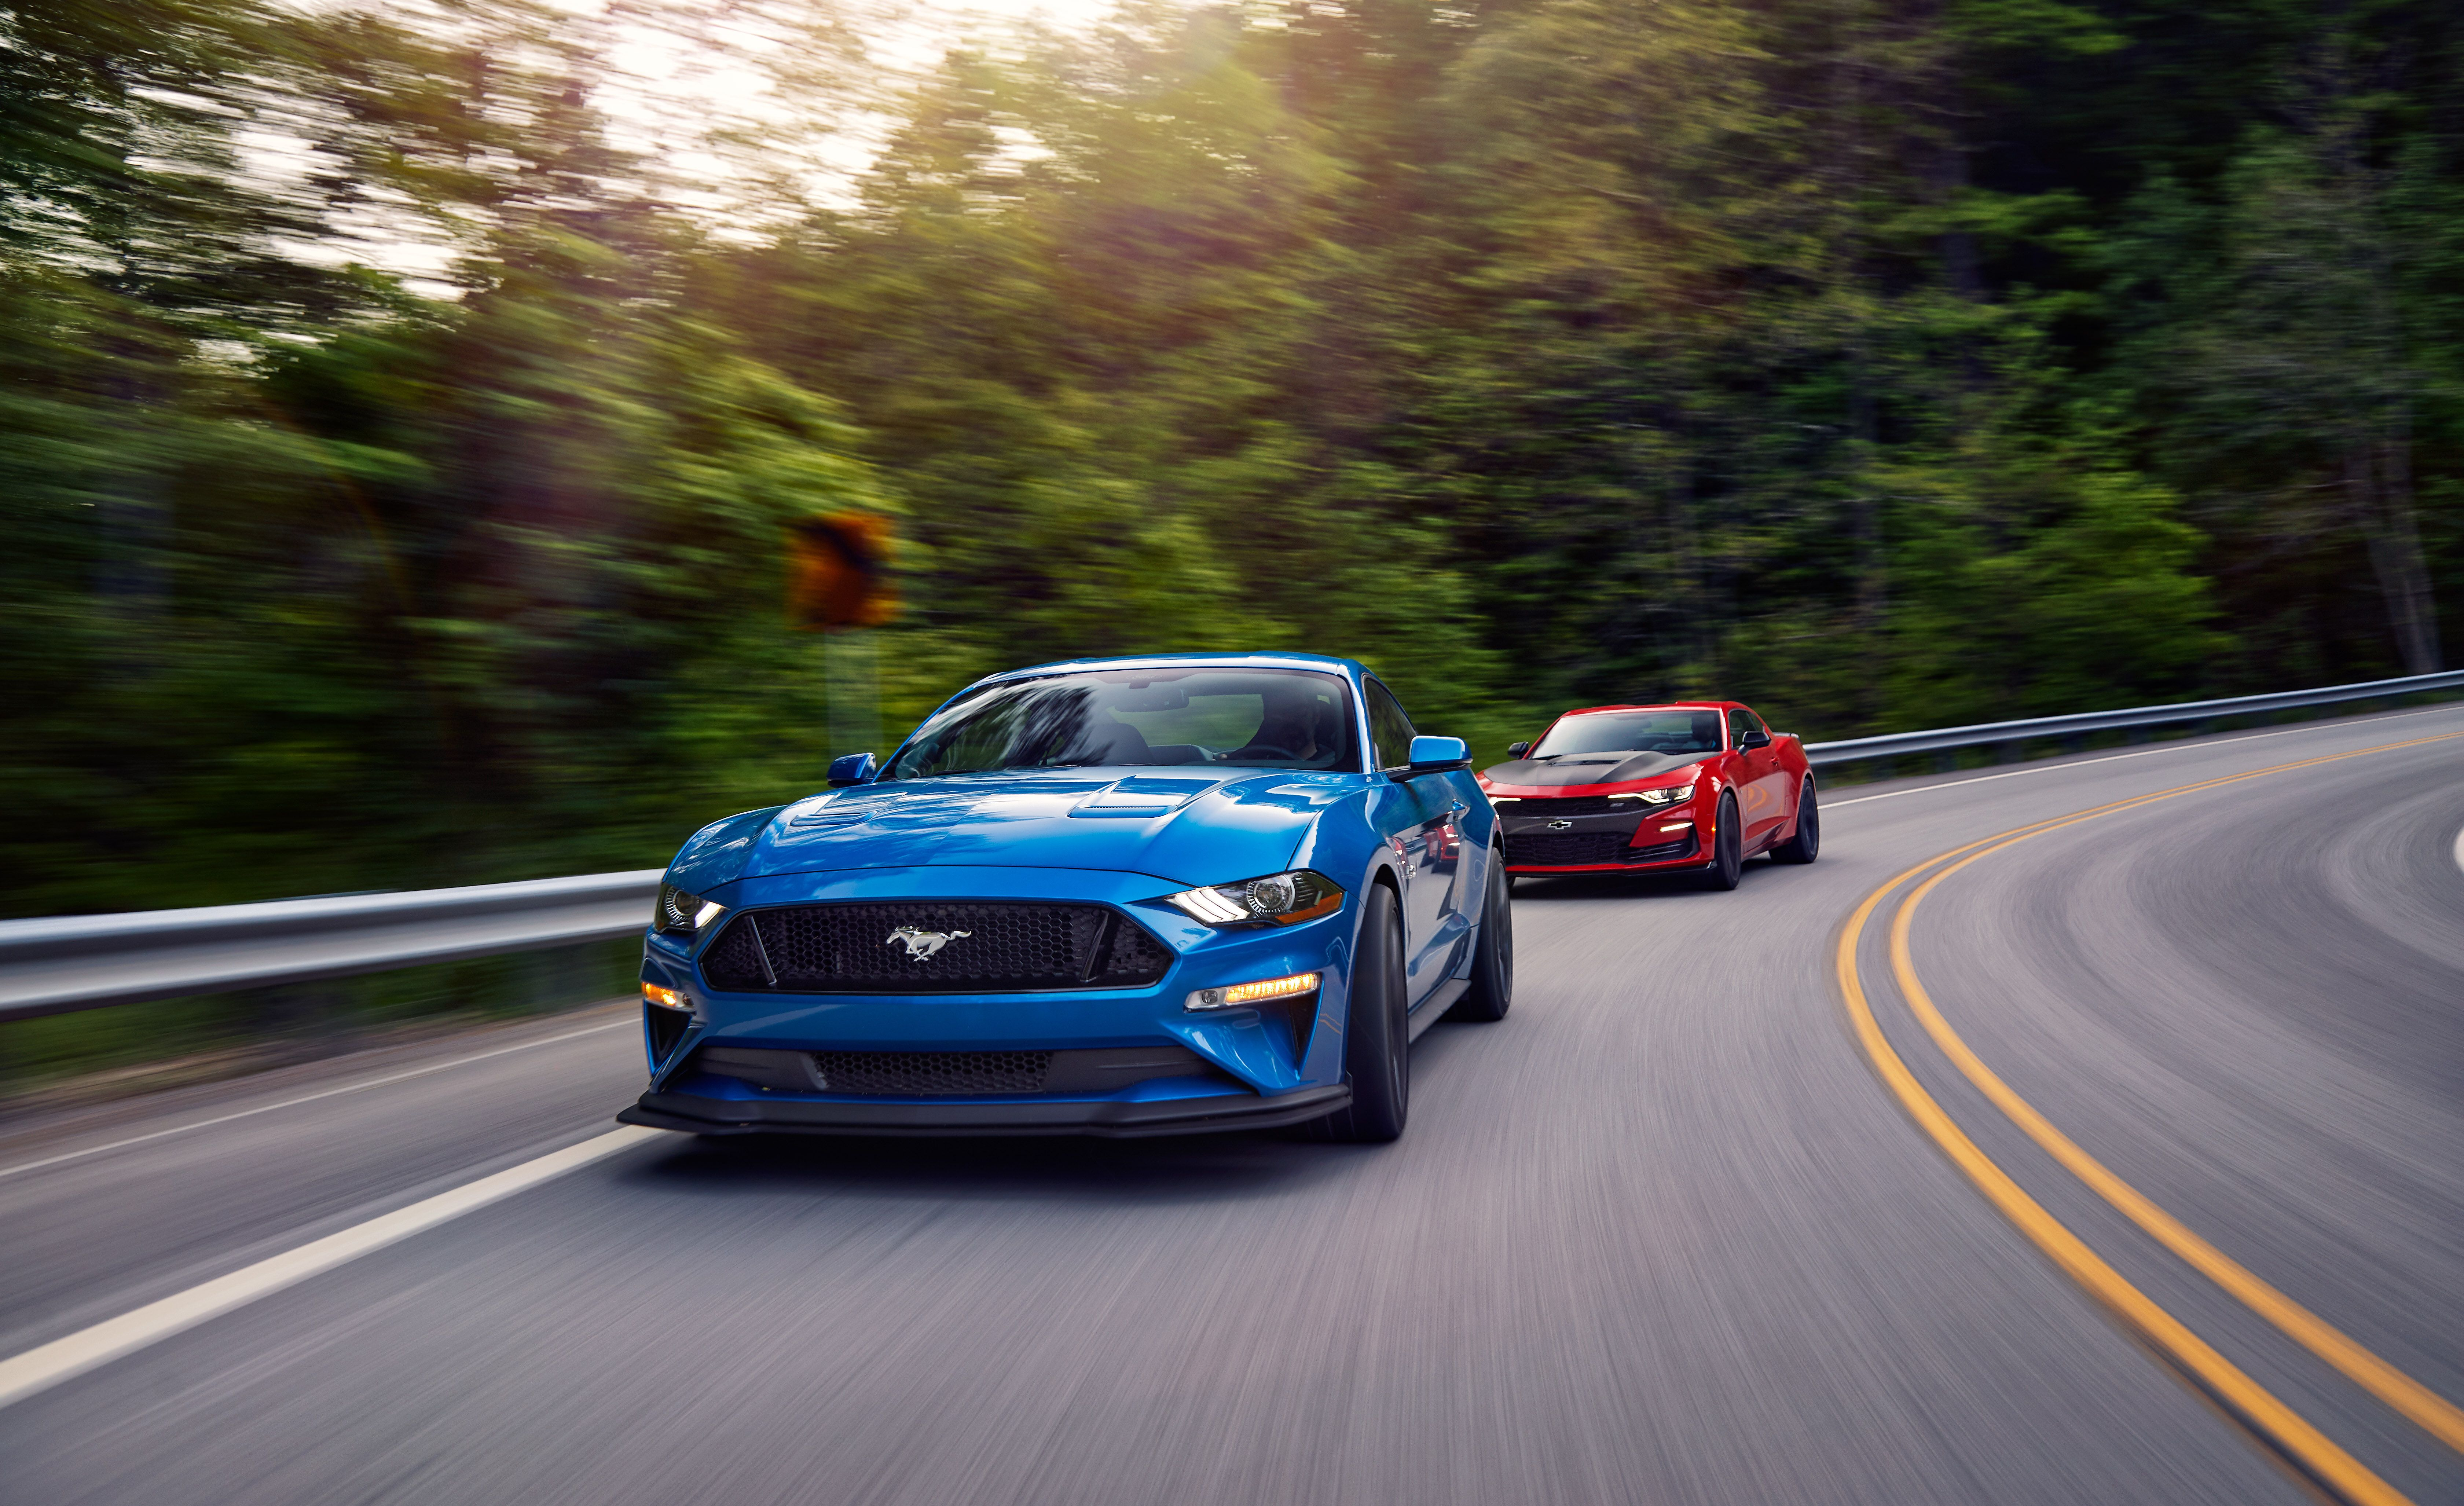 Comments on: 2019 Chevrolet Camaro SS 1LE vs  2019 Ford